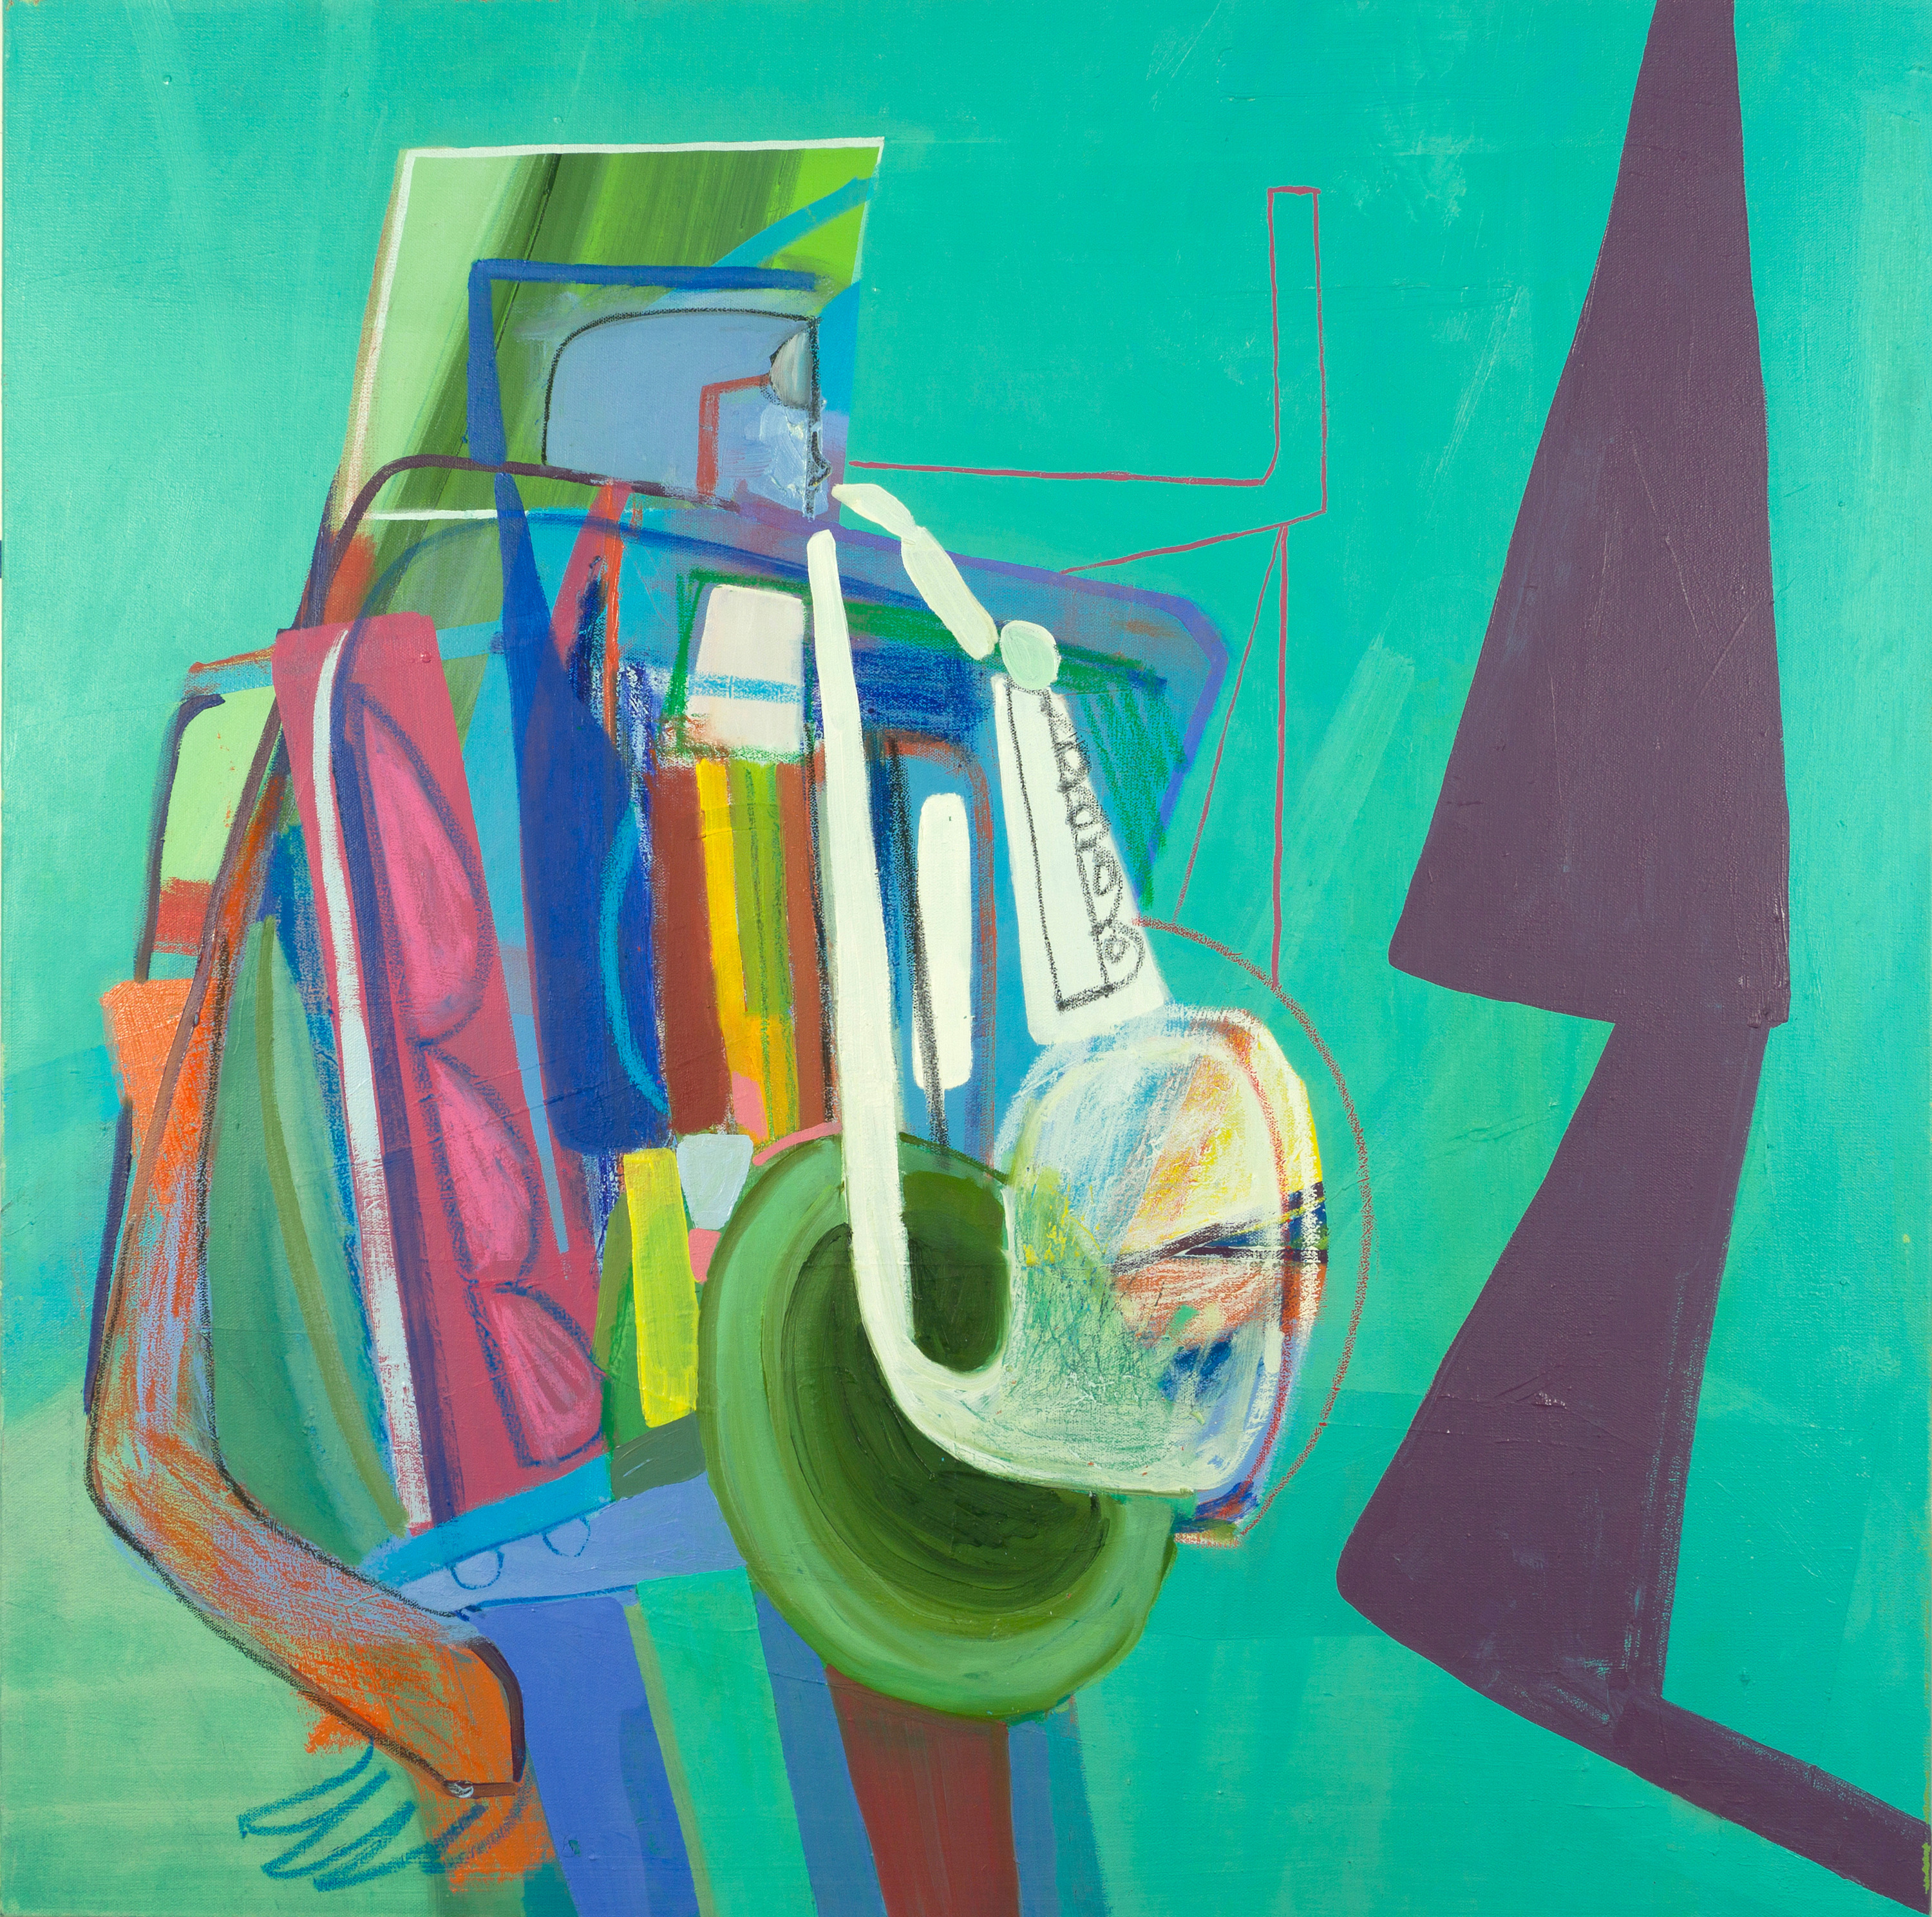 Blow 2017 35 x 35 inches caley odwyer dsc0428 cuy1qy